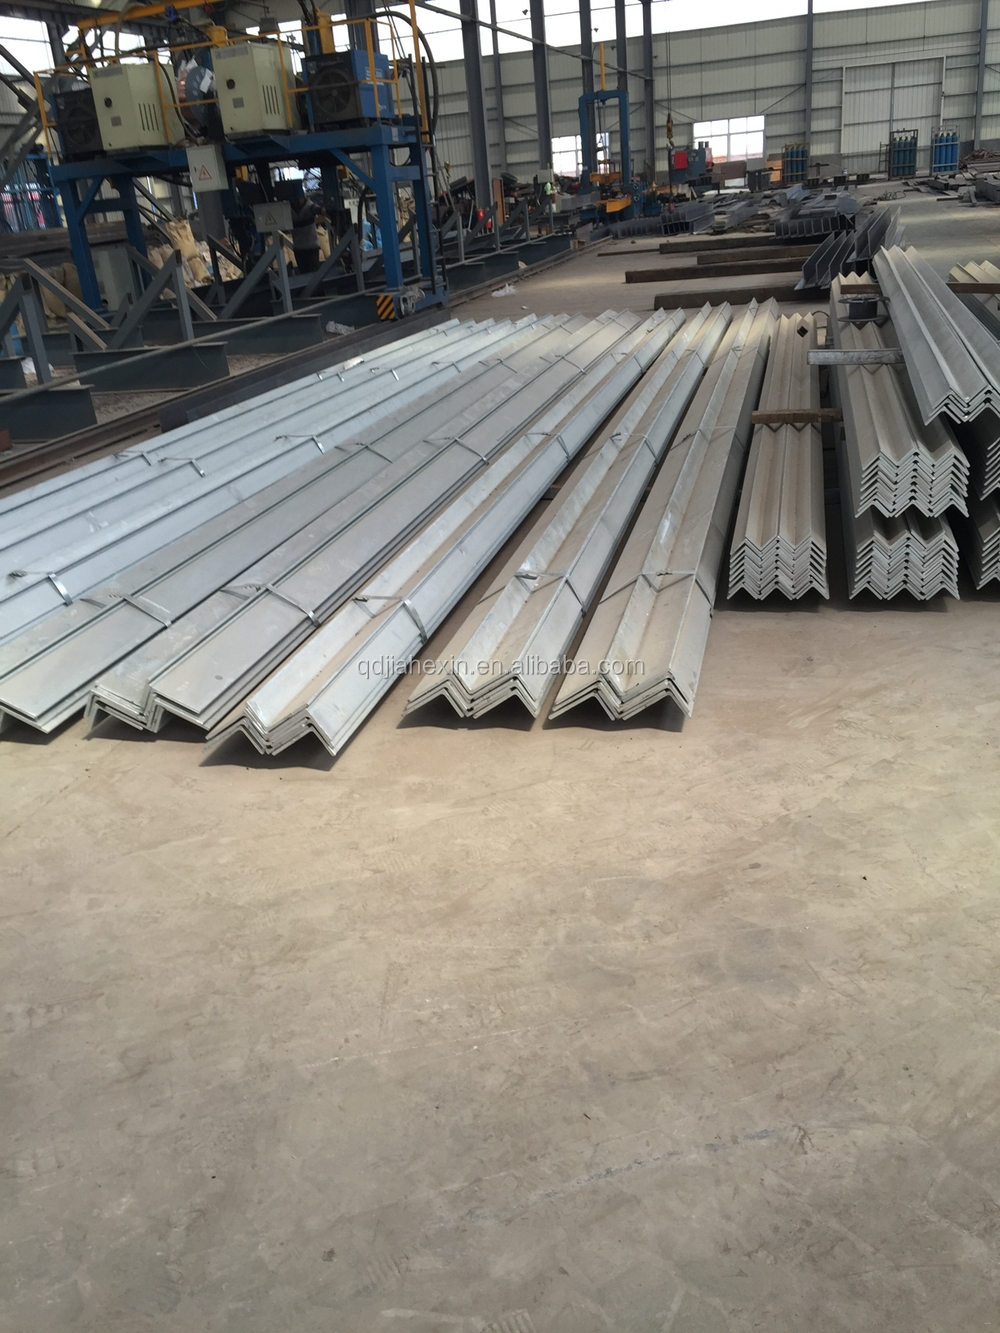 Light Prefabricated Steel Structural Roof Trusses